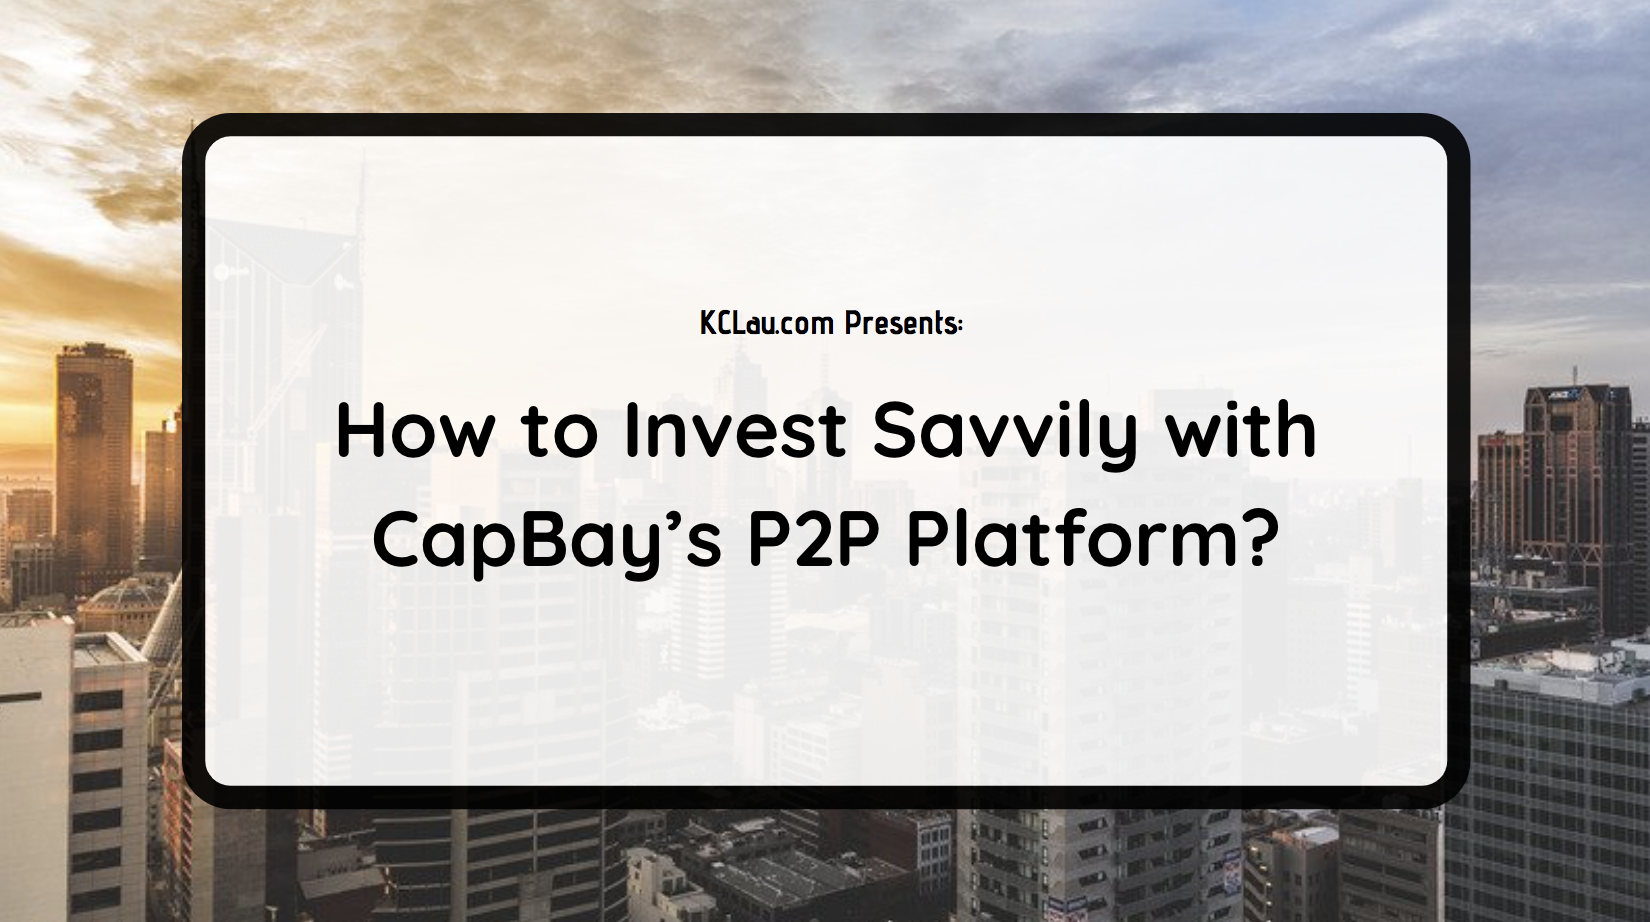 How to Invest Savvily with CapBay's P2P Platform?